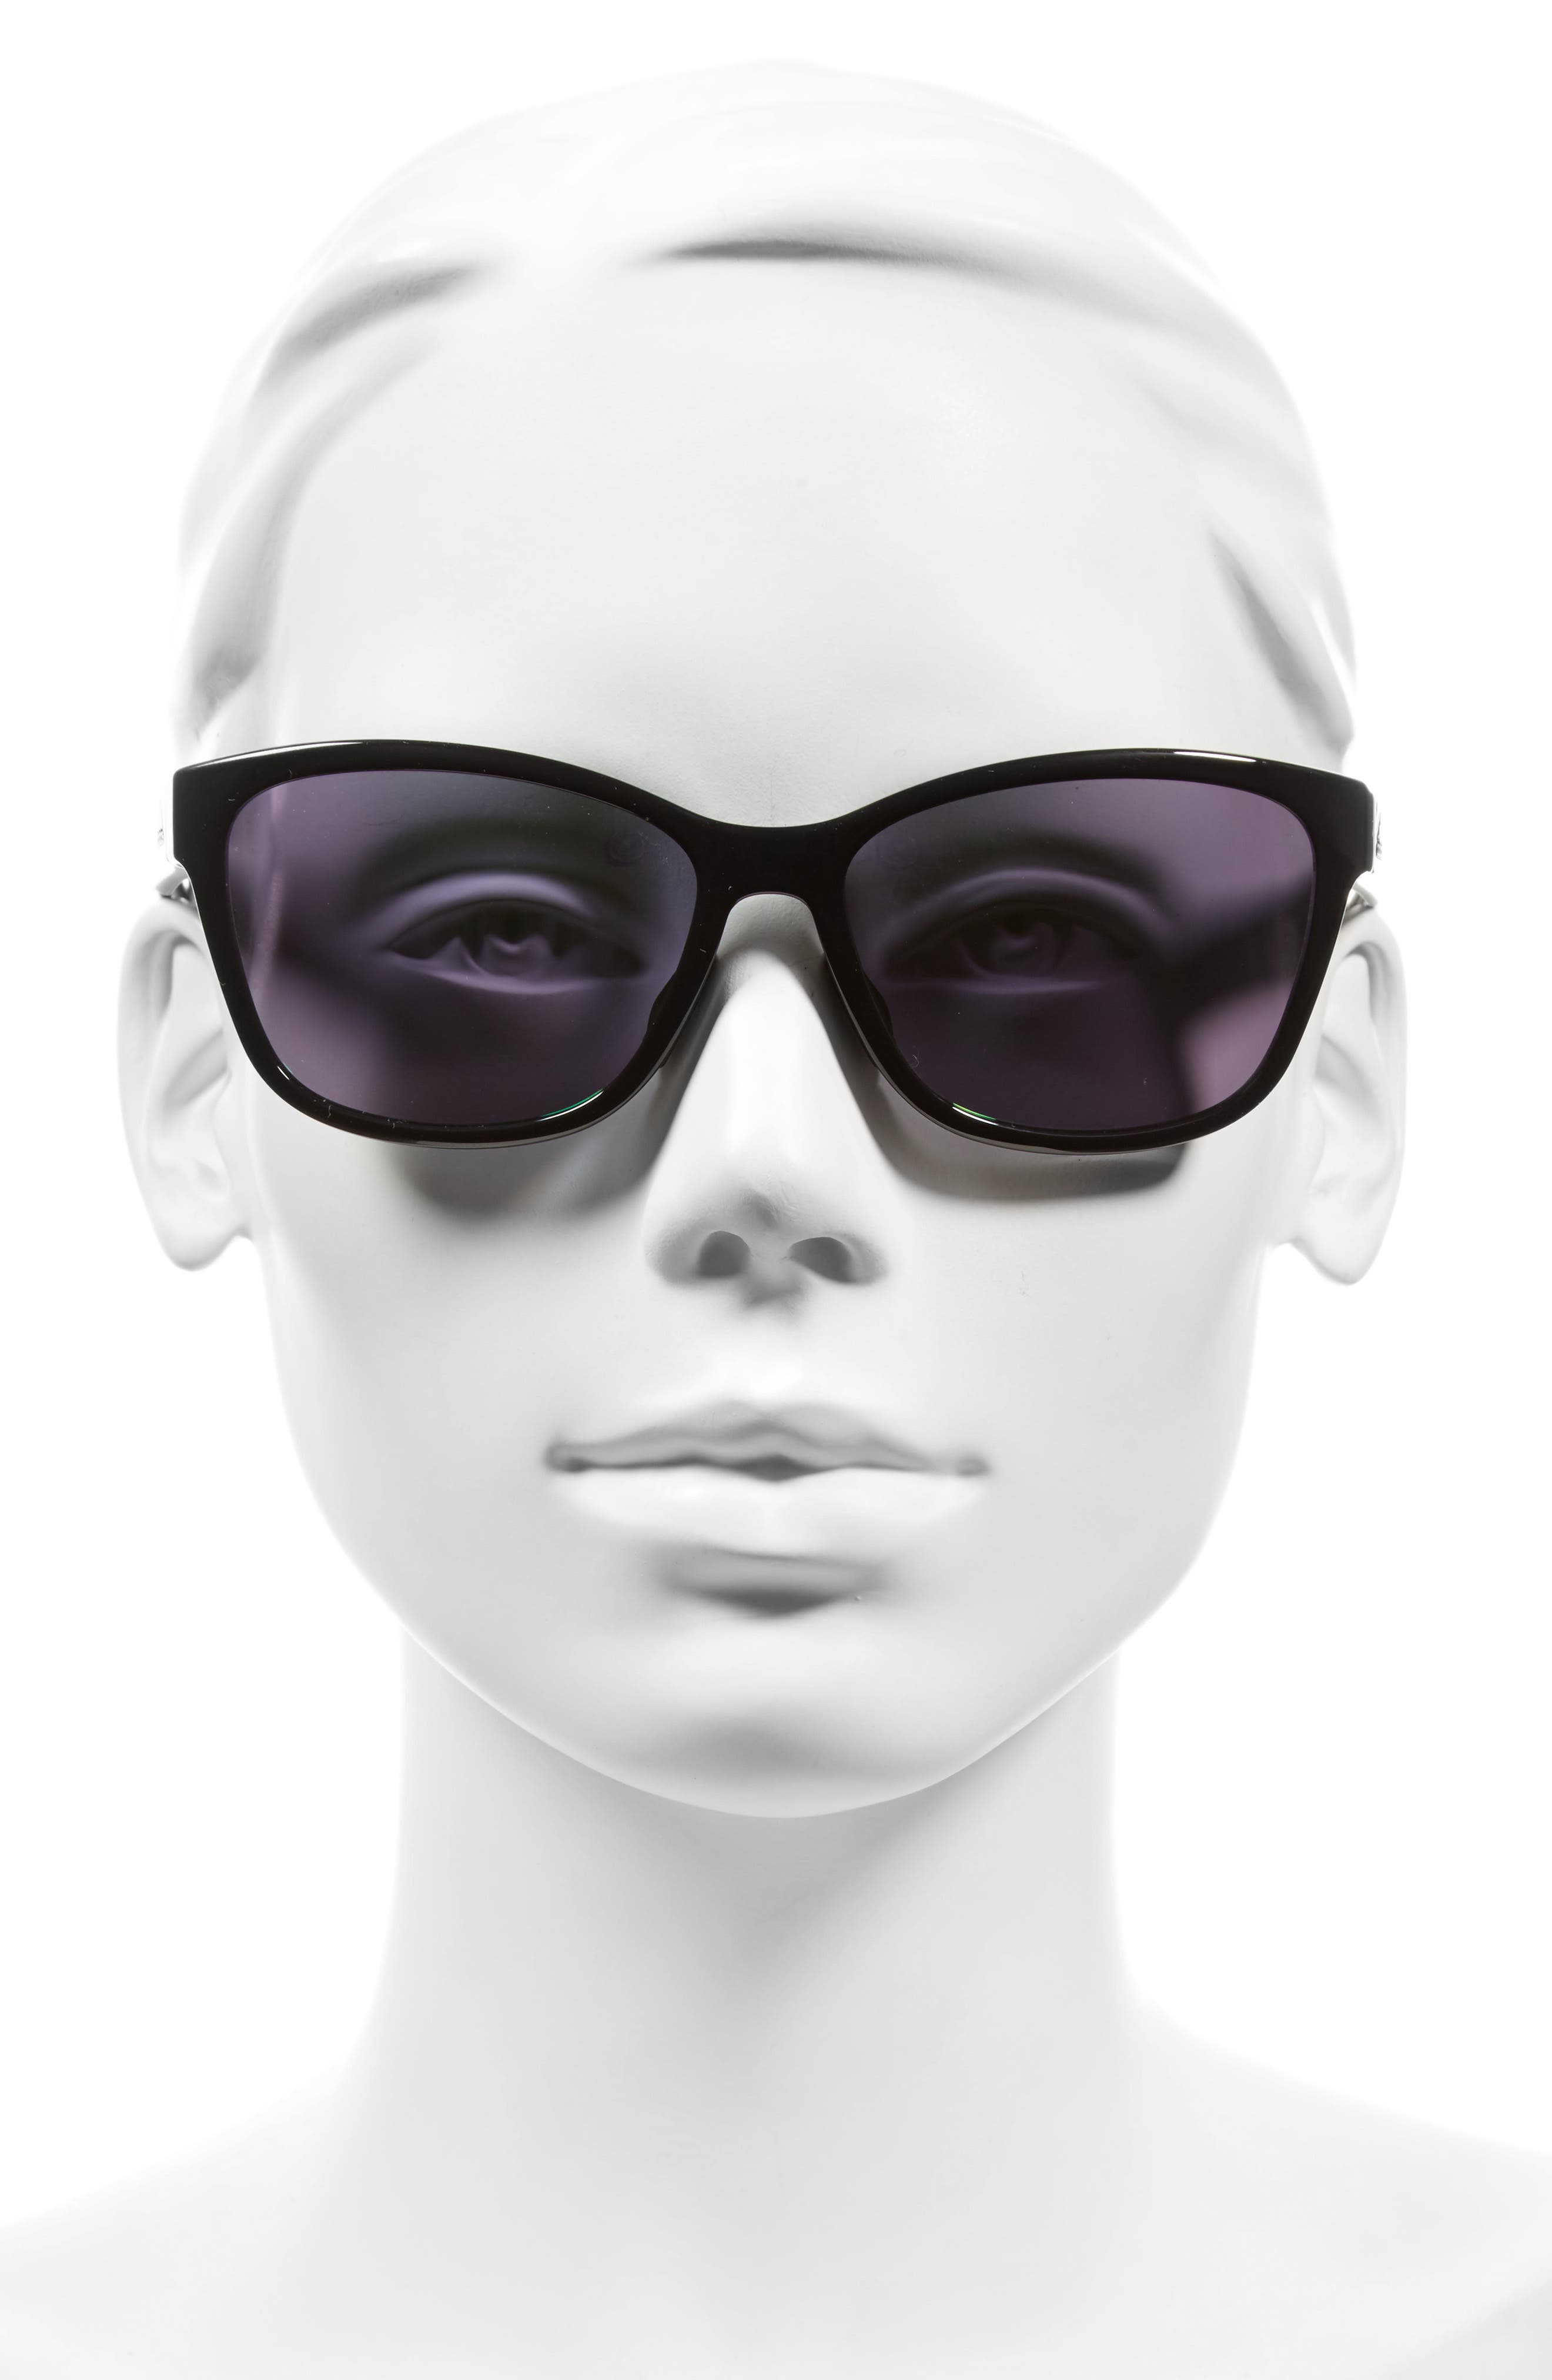 Excalate 58mm Mirrored Sunglasses,                             Alternate thumbnail 2, color,                             SHINY BLACK/ GREEN MIRROR